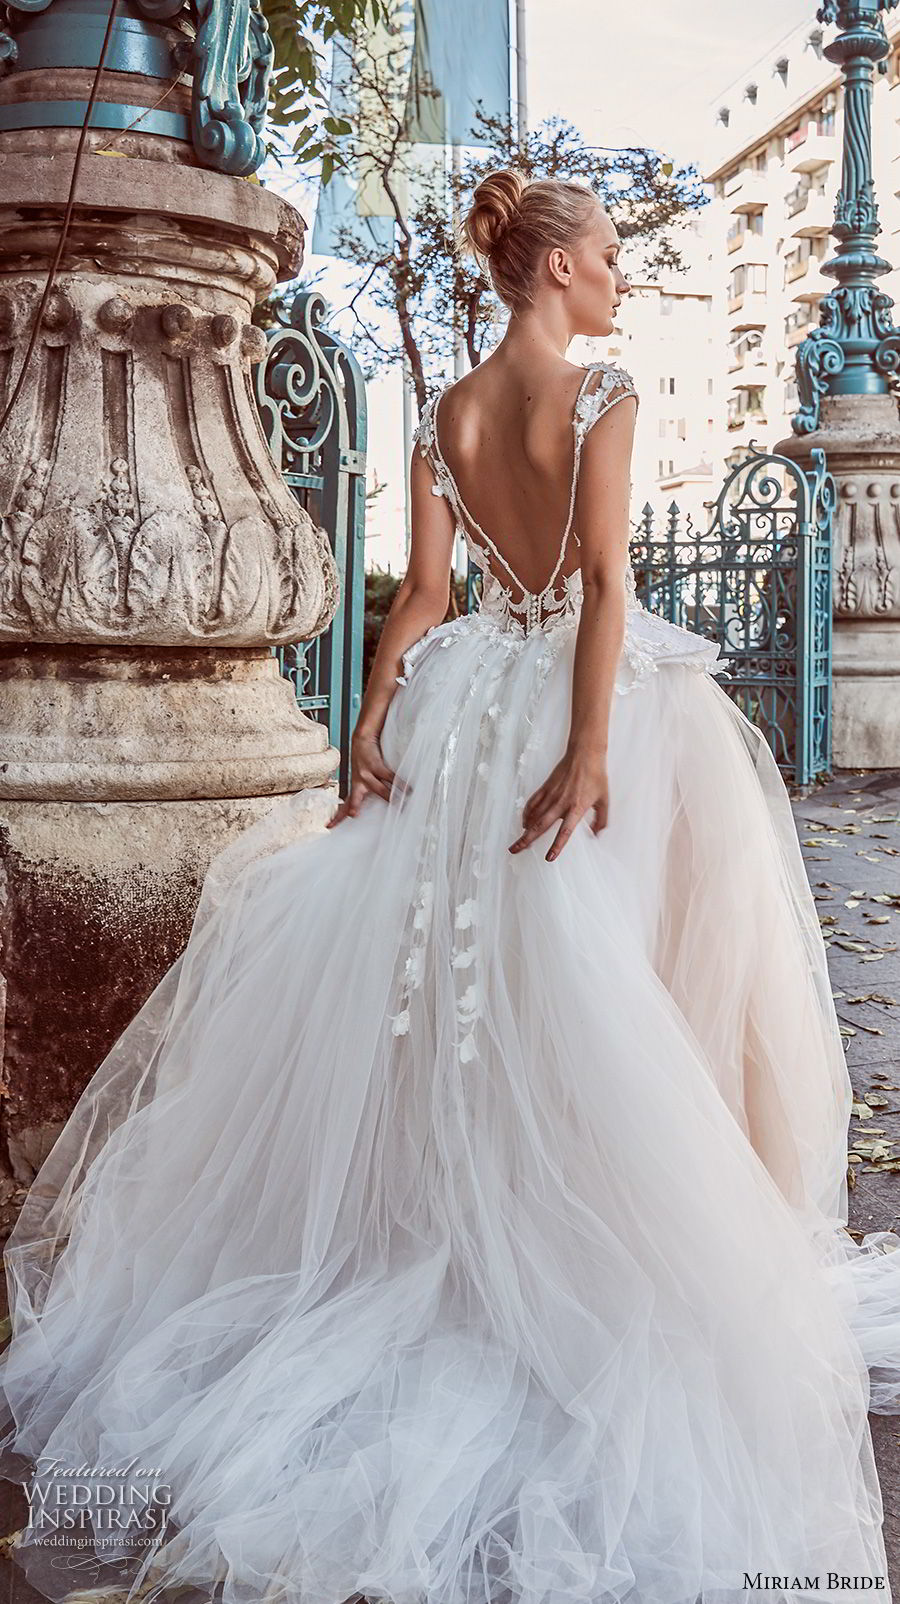 miriams bride 2018 bridal cap sleeves illusion bateau sweetheart neckline tulle skirt romantic ball gown a line wedding dress v back chapel train (1) bv